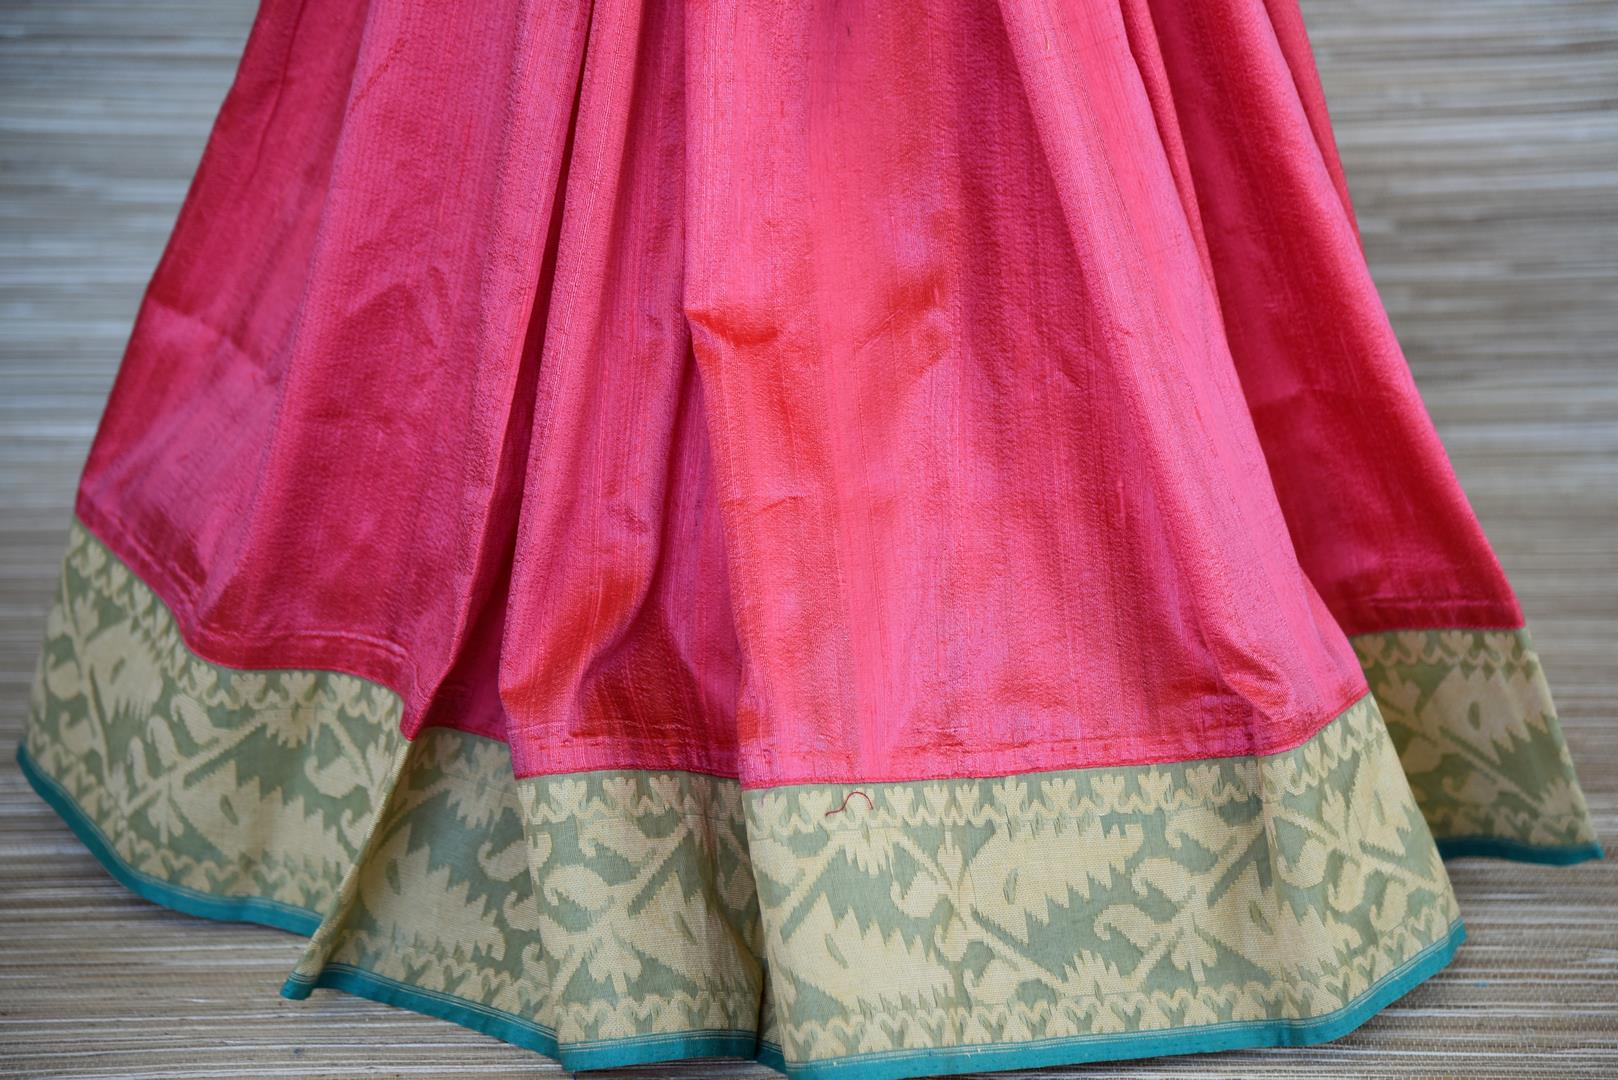 Buy gorgeous pink raw silk sari online in USA with beige dhakai border and saree blouse. Stand amongst the crowd with your tasteful ethnic style in beautiful handwoven silk saris from Pure Elegance Indian fashion store for Indian women in USA.-pleats